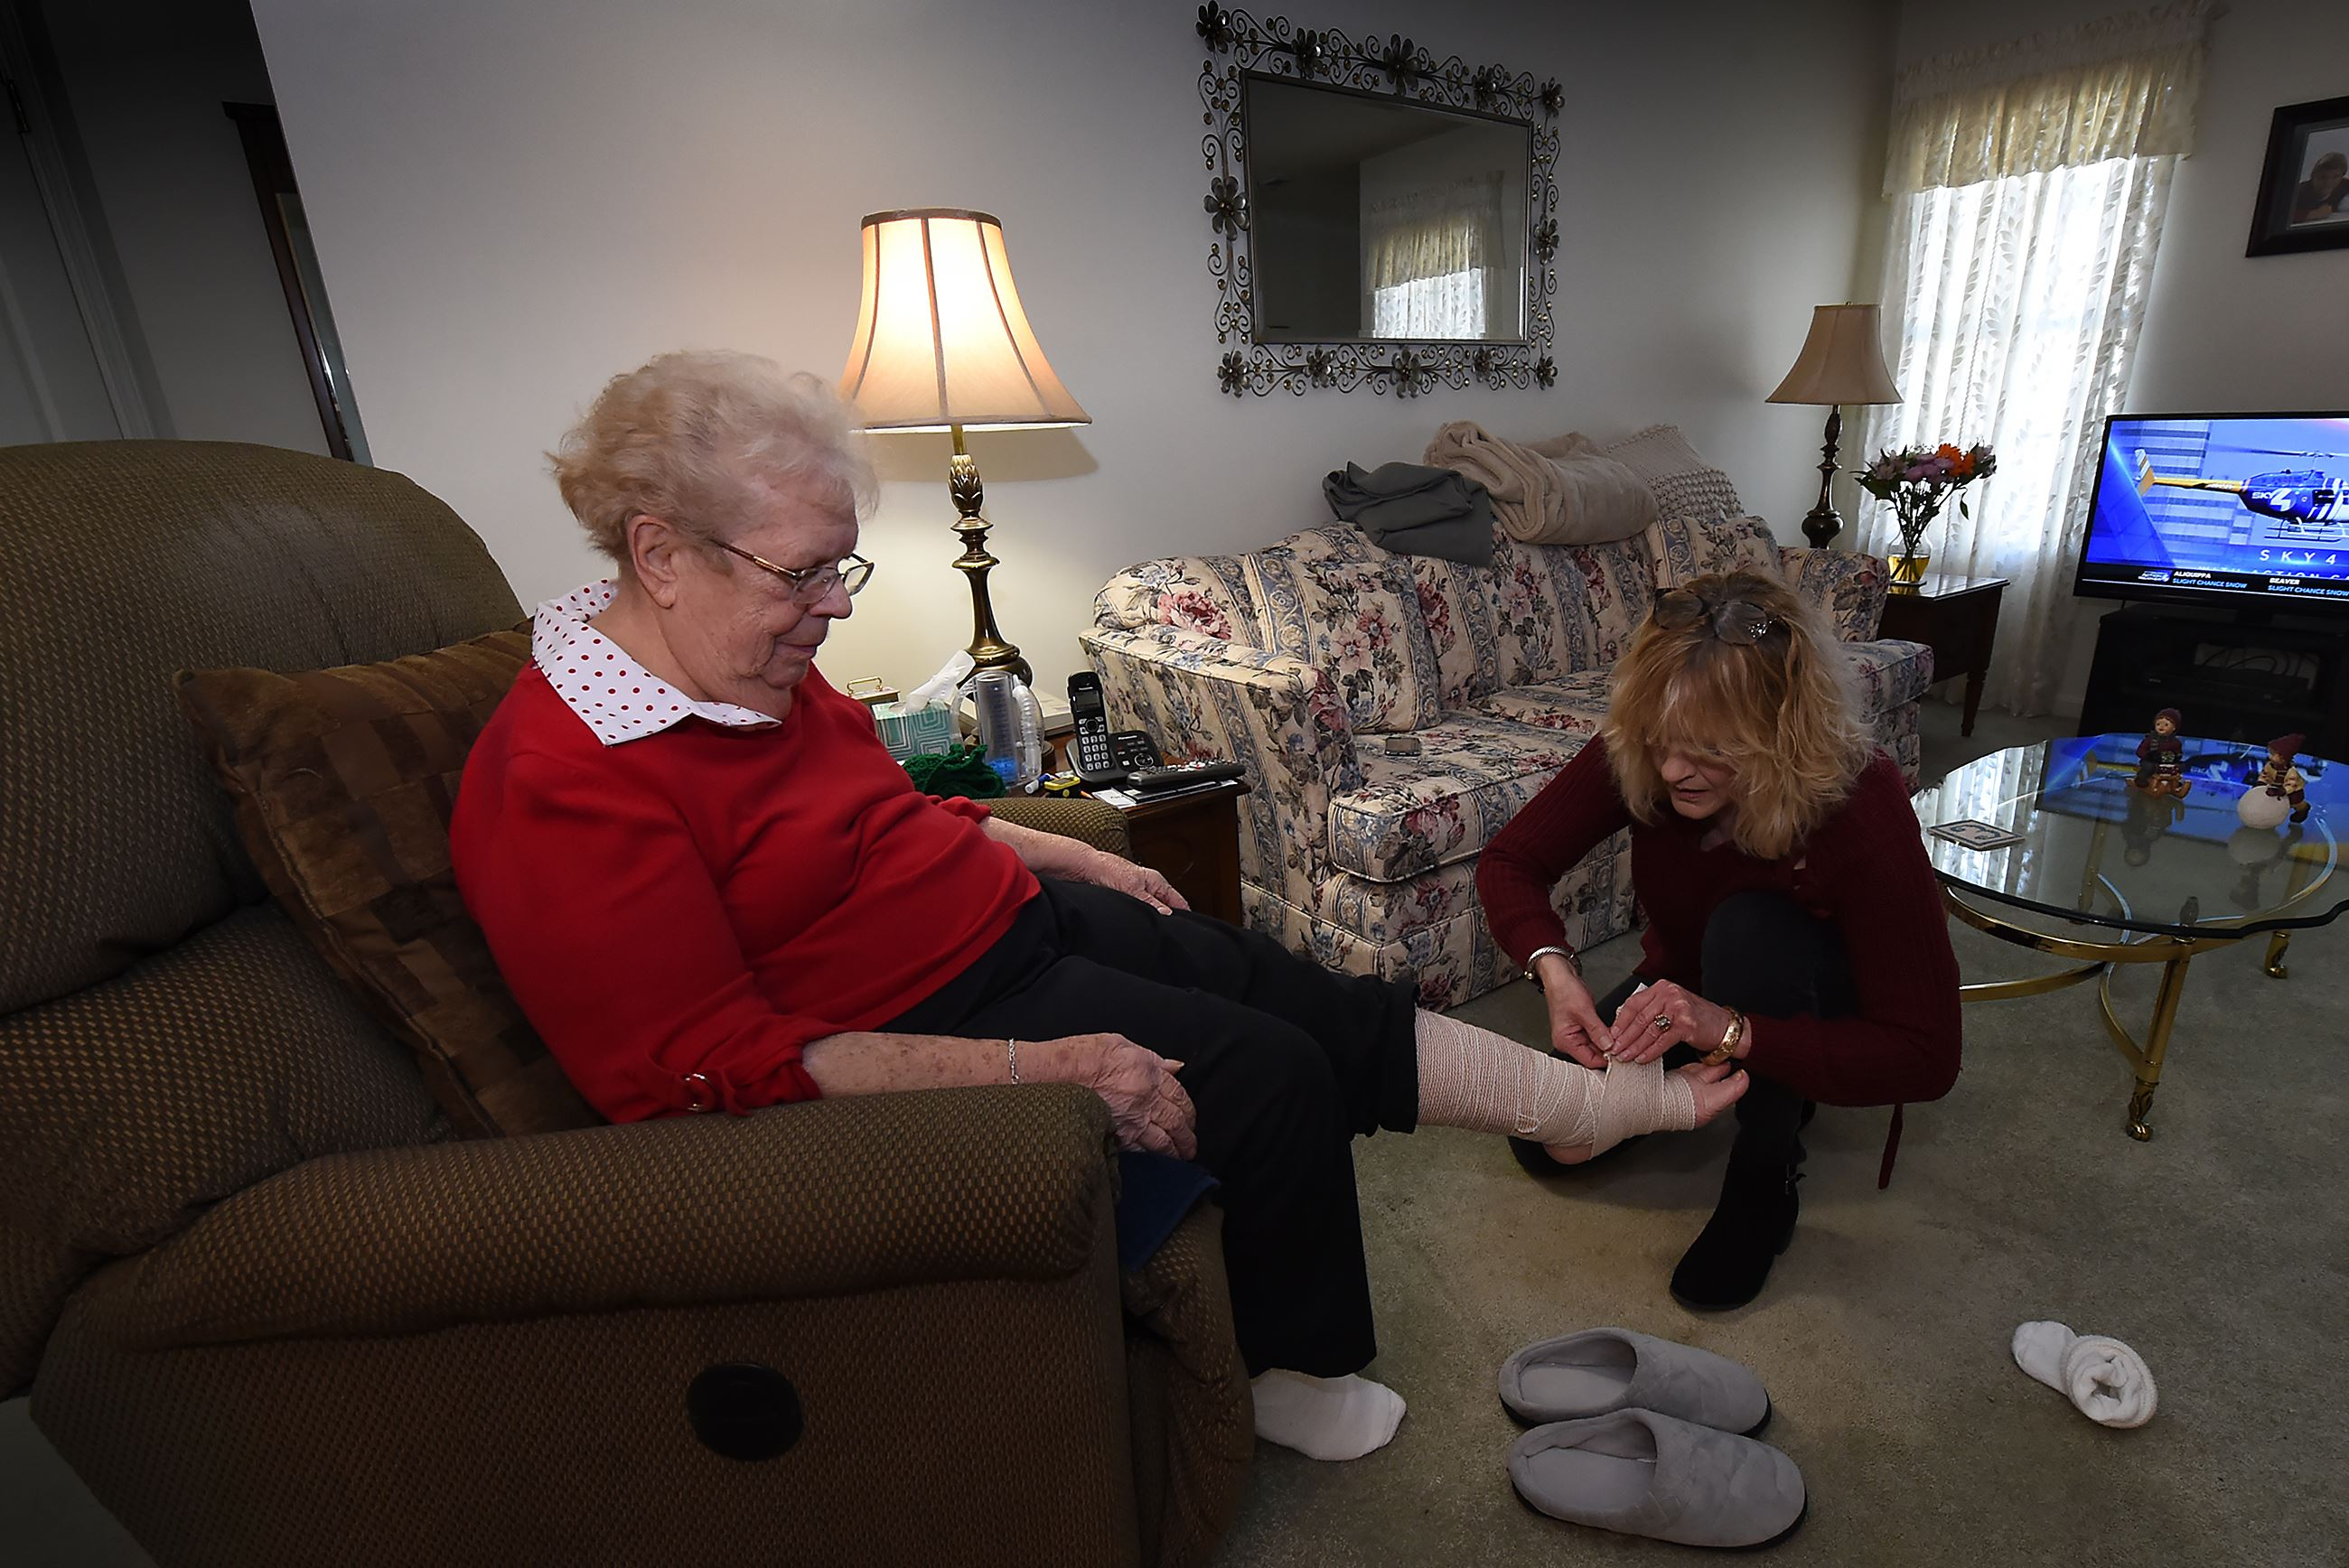 20170316pdHealthCare03-2 Cindy McDonald, an aide with Sunny Days In-Home Care, tightens a bandage on Betty Erdely's ankle in Ms. Erdely's Bethel Park home.